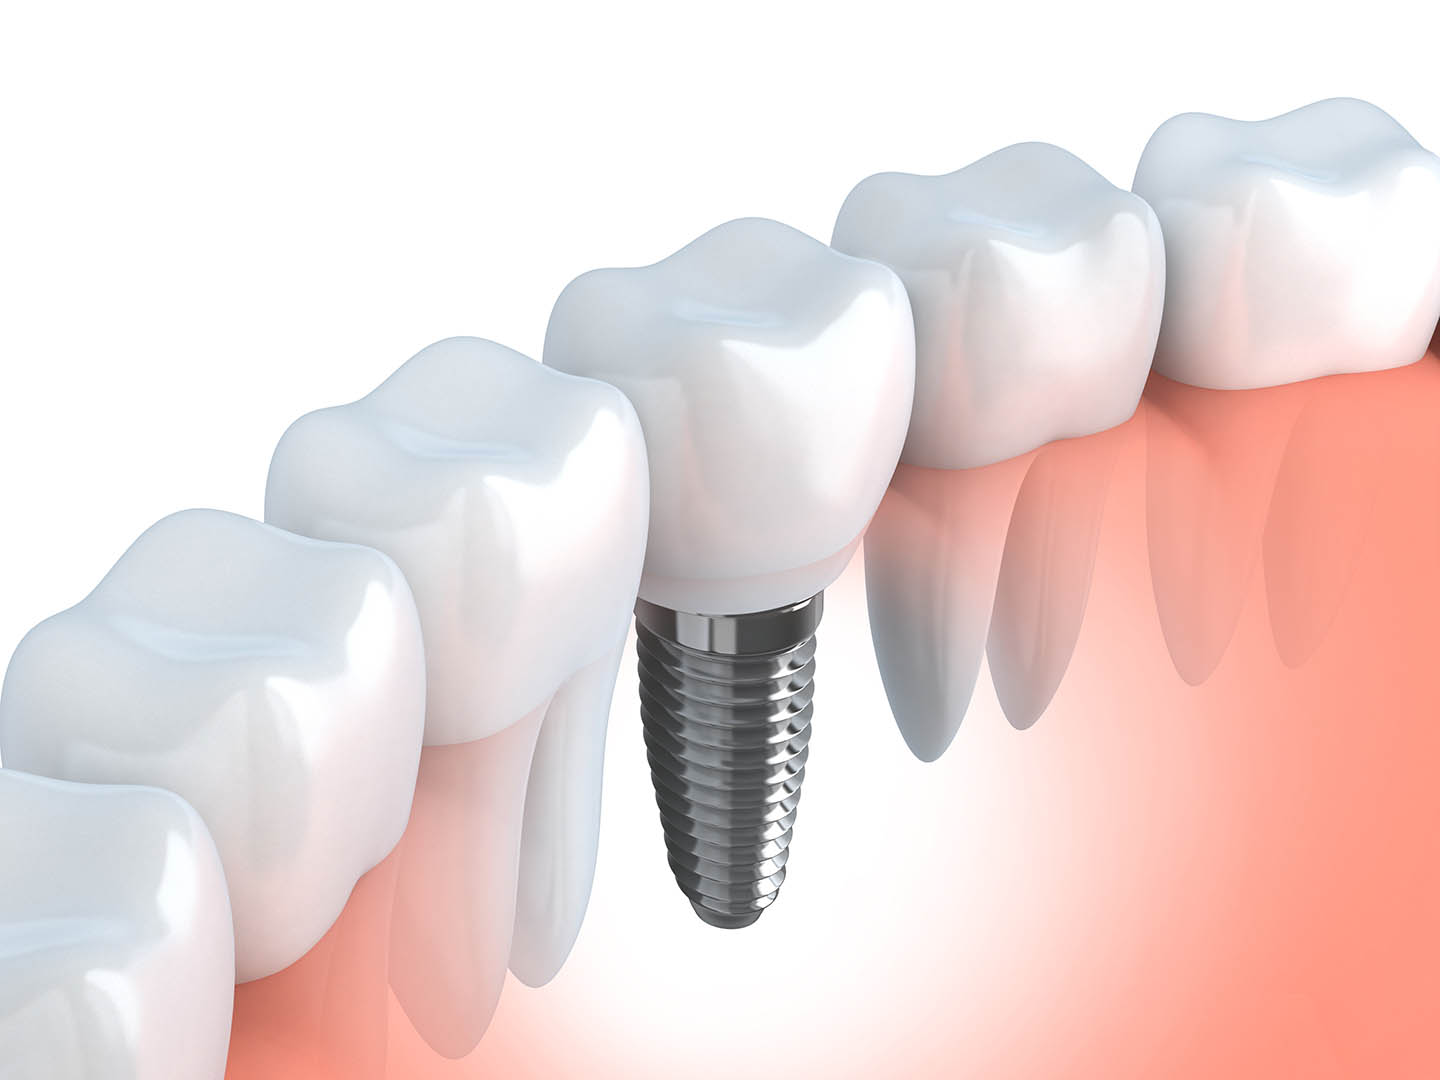 Graphic of a single-tooth implant